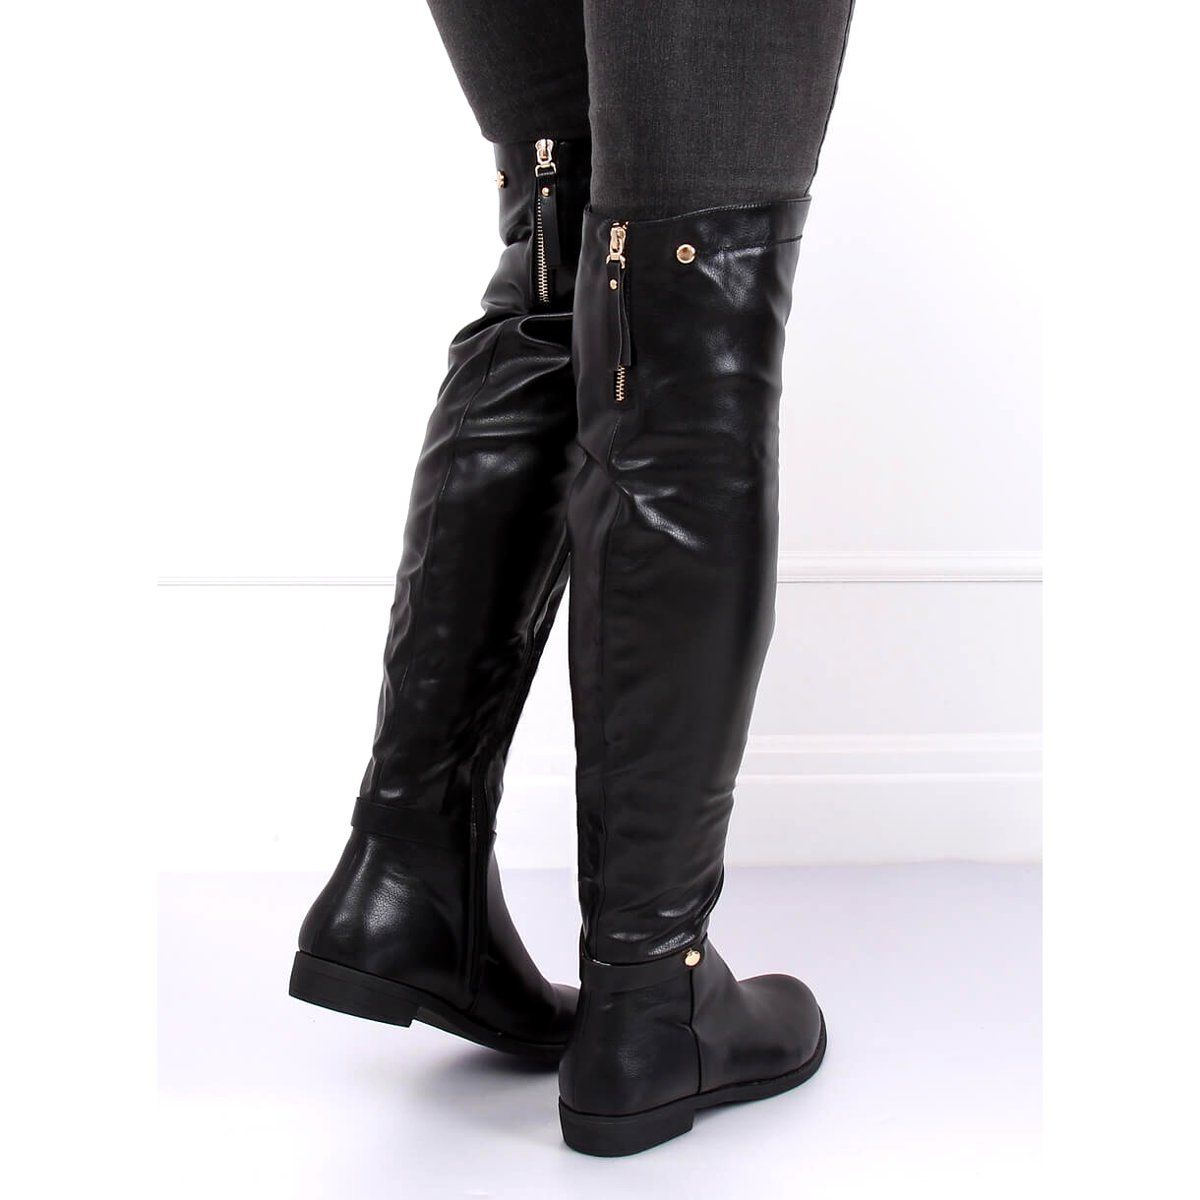 Black Thigh Boots Black 1943 50a Black Black Thigh Boots Black Boots Boots